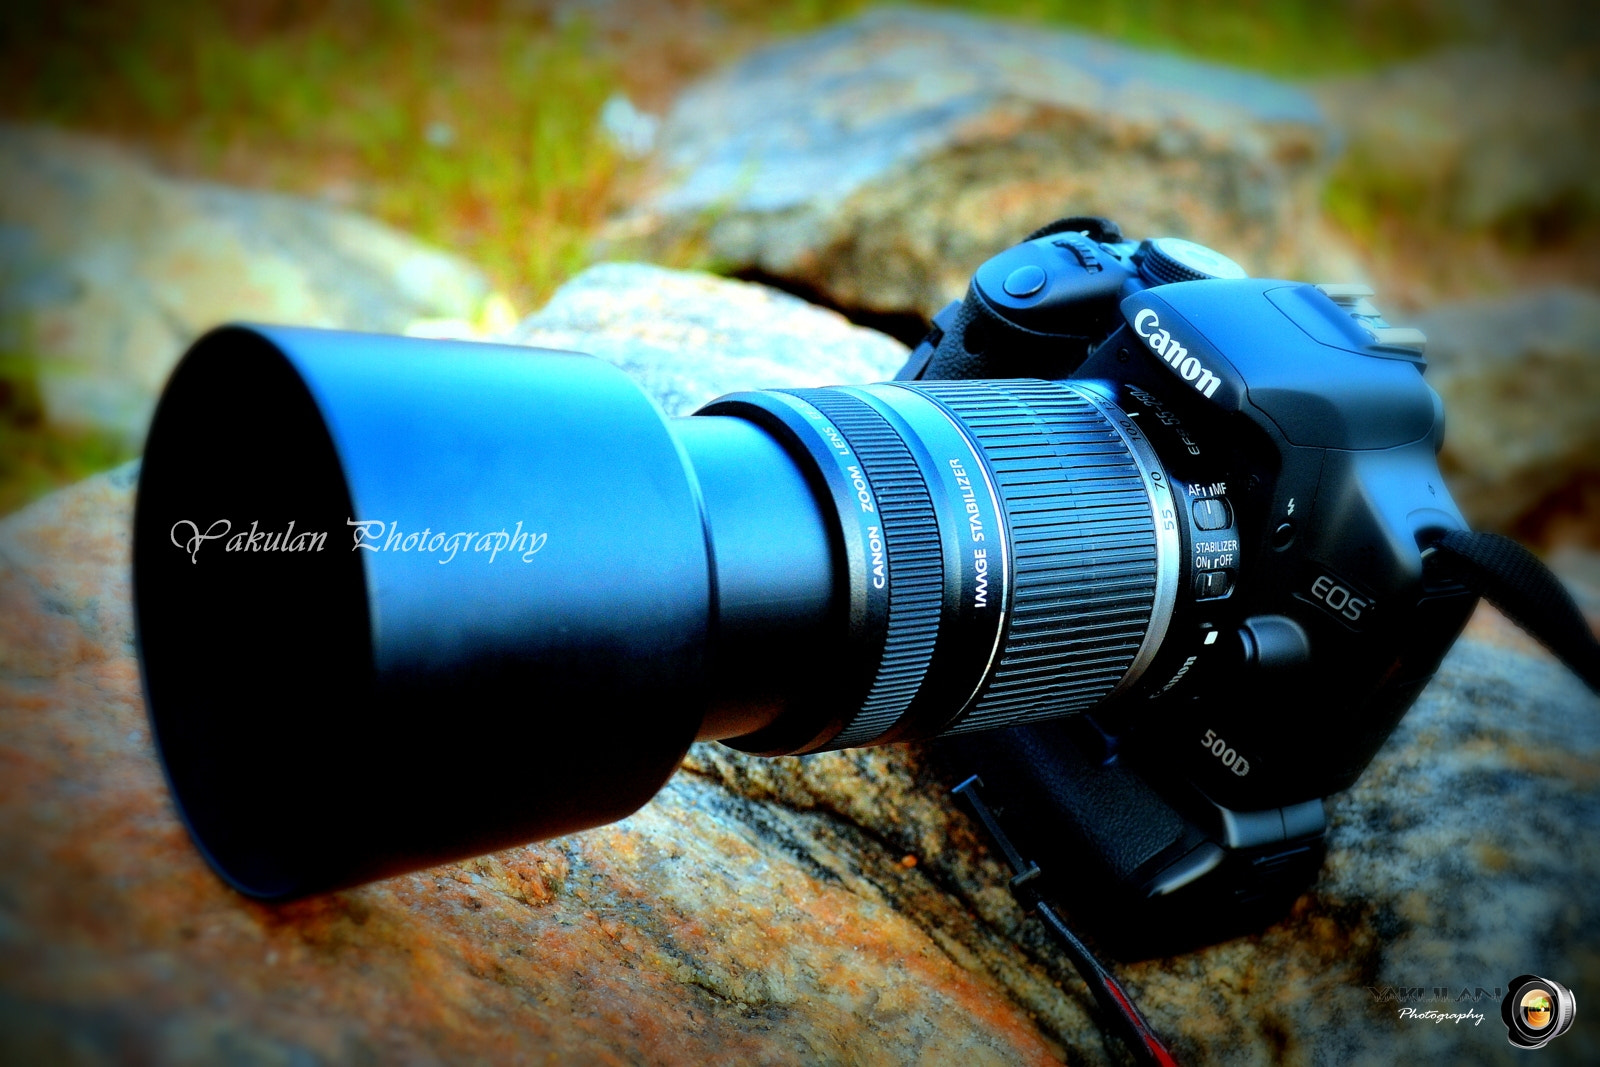 Photograph Canon 500D on The Rock by Yakulan Balendran on 500px